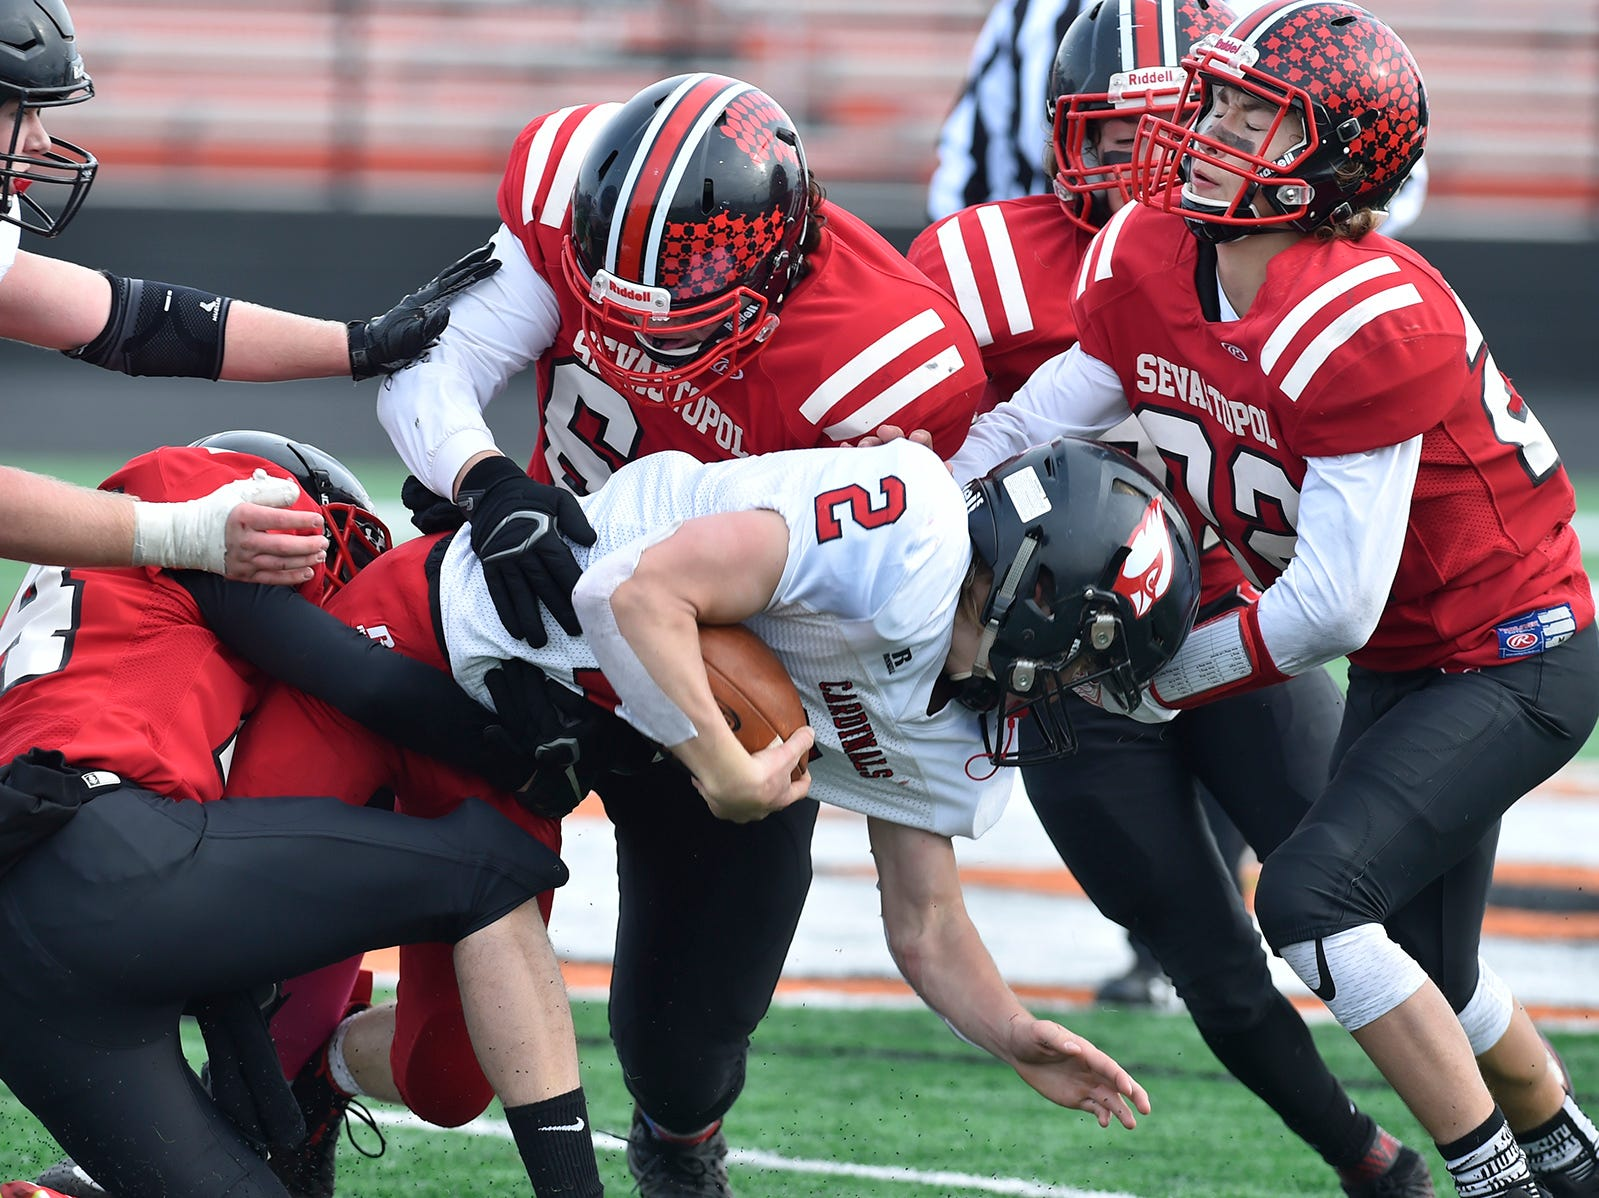 Sevastopol defense digs in deeper at the WIAA 8-Player State Championship game at Stanley-Boyd High School on Nov. 3, 2018. Tina M. Gohr/USA TODAY NETWORK-Wisconsin